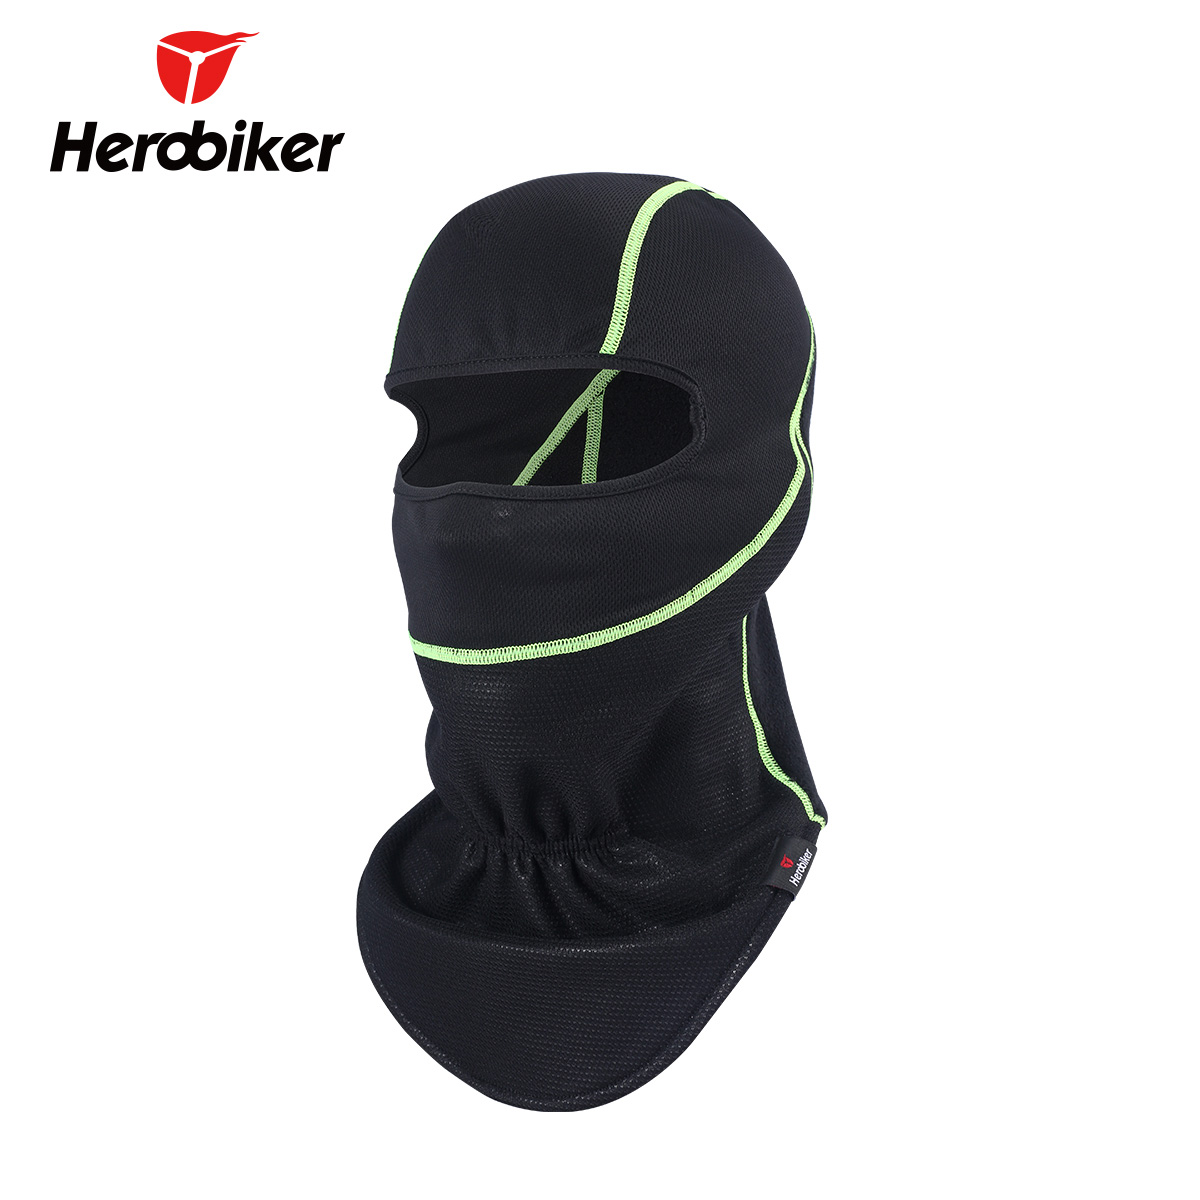 HEROBIKER Motorcycle Full Face Mask Cycling Mask Motor Cycle Masks Bicycle Sports Protect Road Bike Bicycle Bisiklet Maskesi